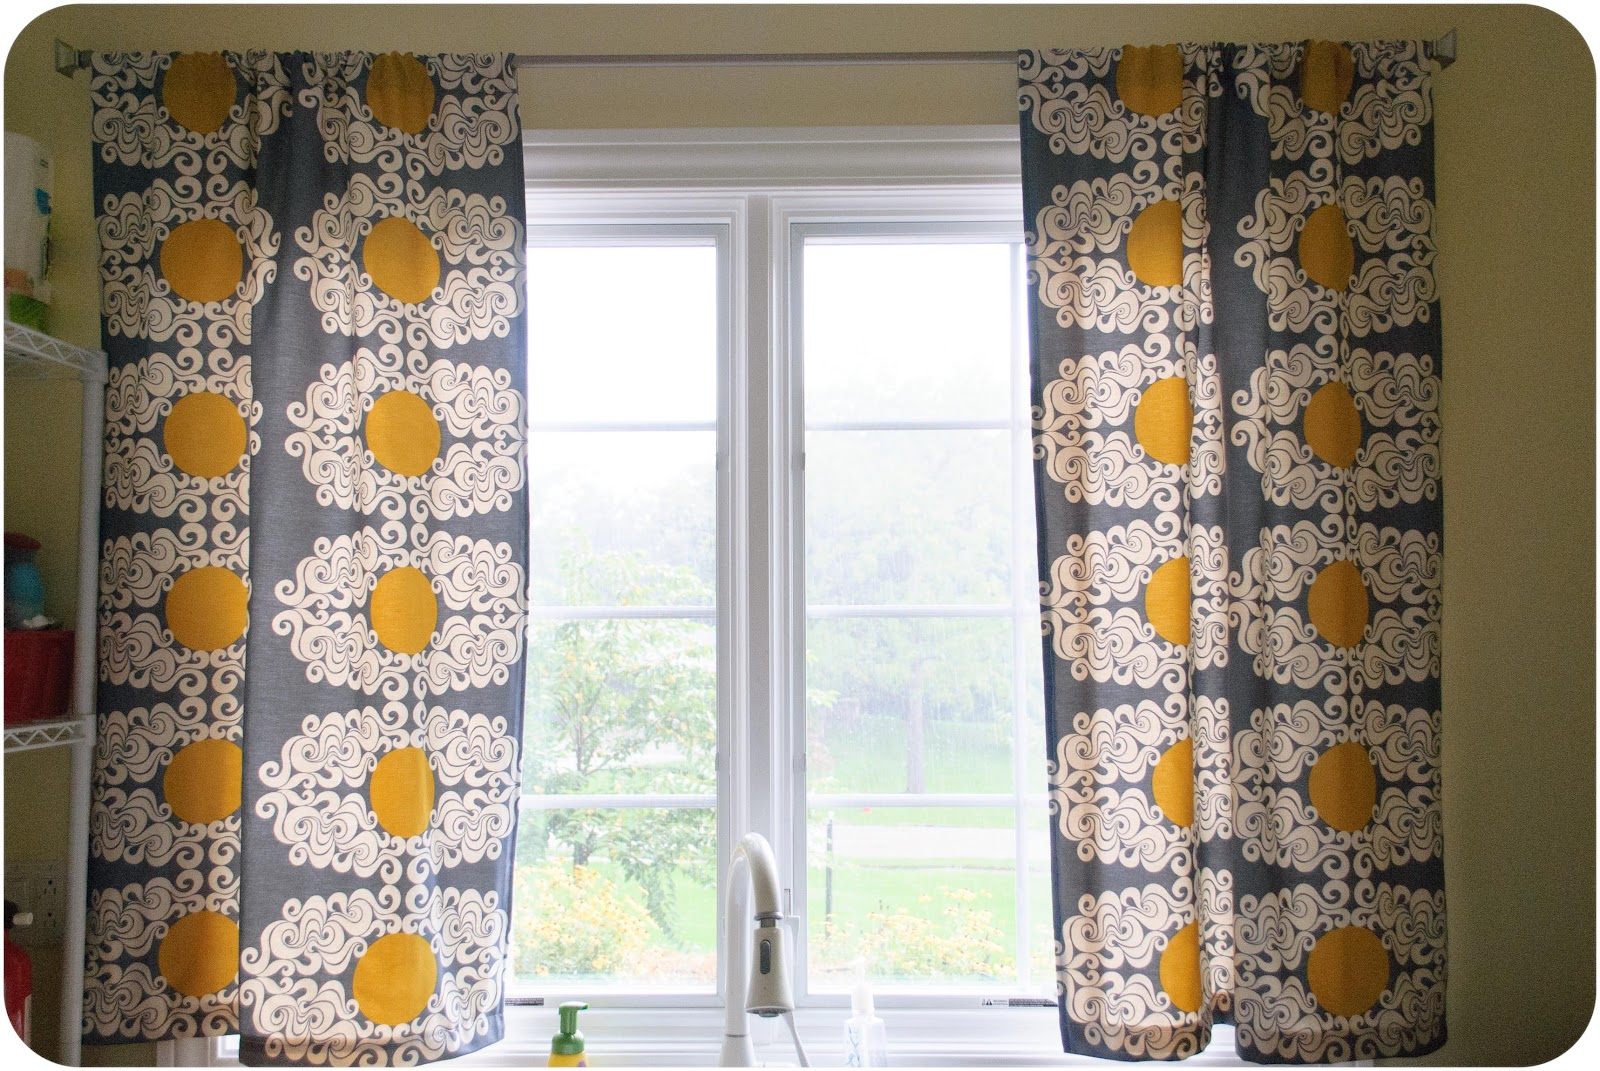 Laundry room curtains - Laundry Room Lined Curtains